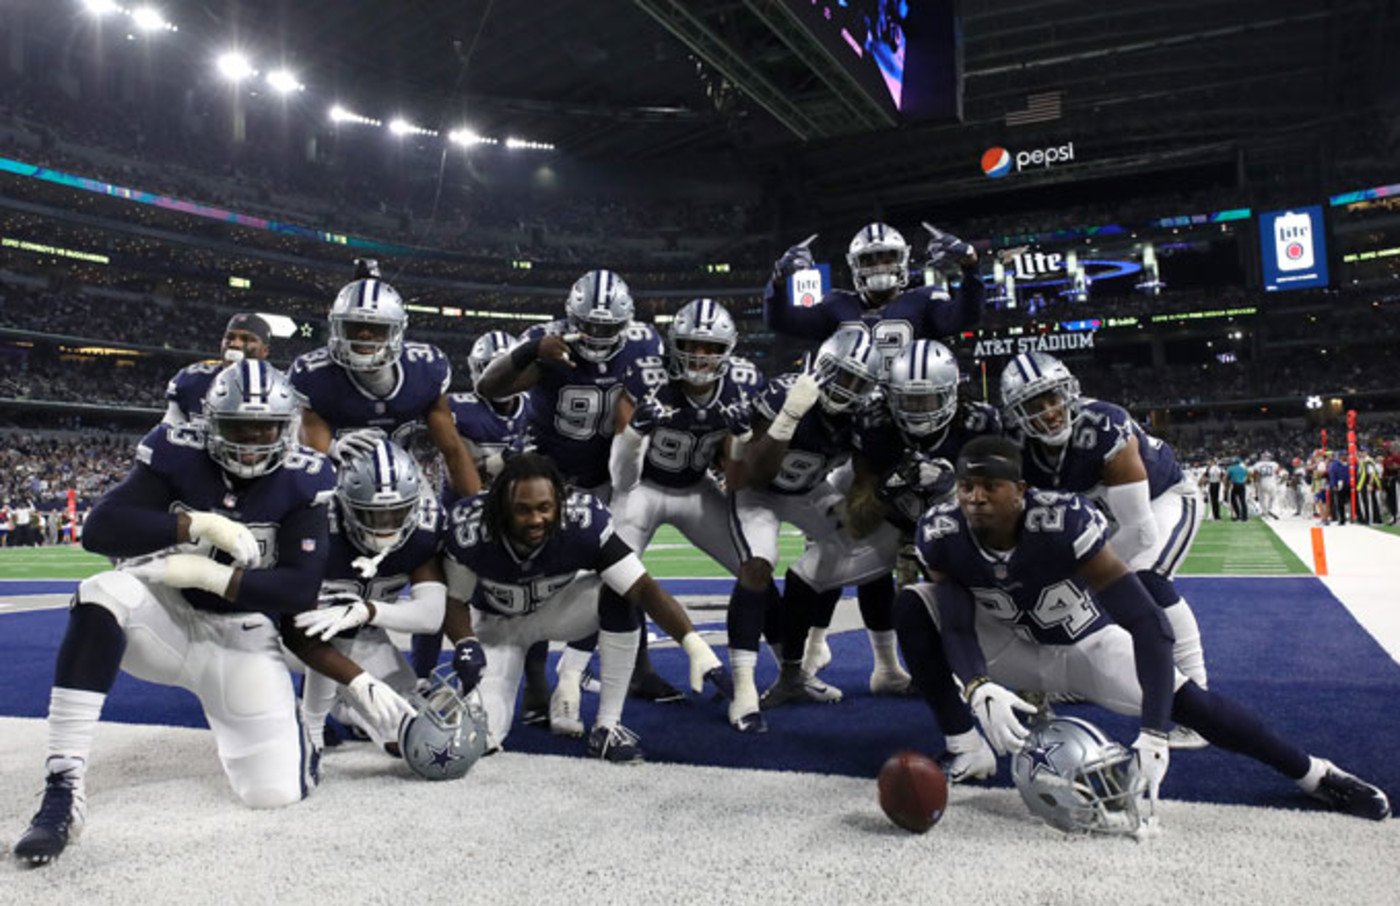 The Cowboys celebrate in the end zone after a score.